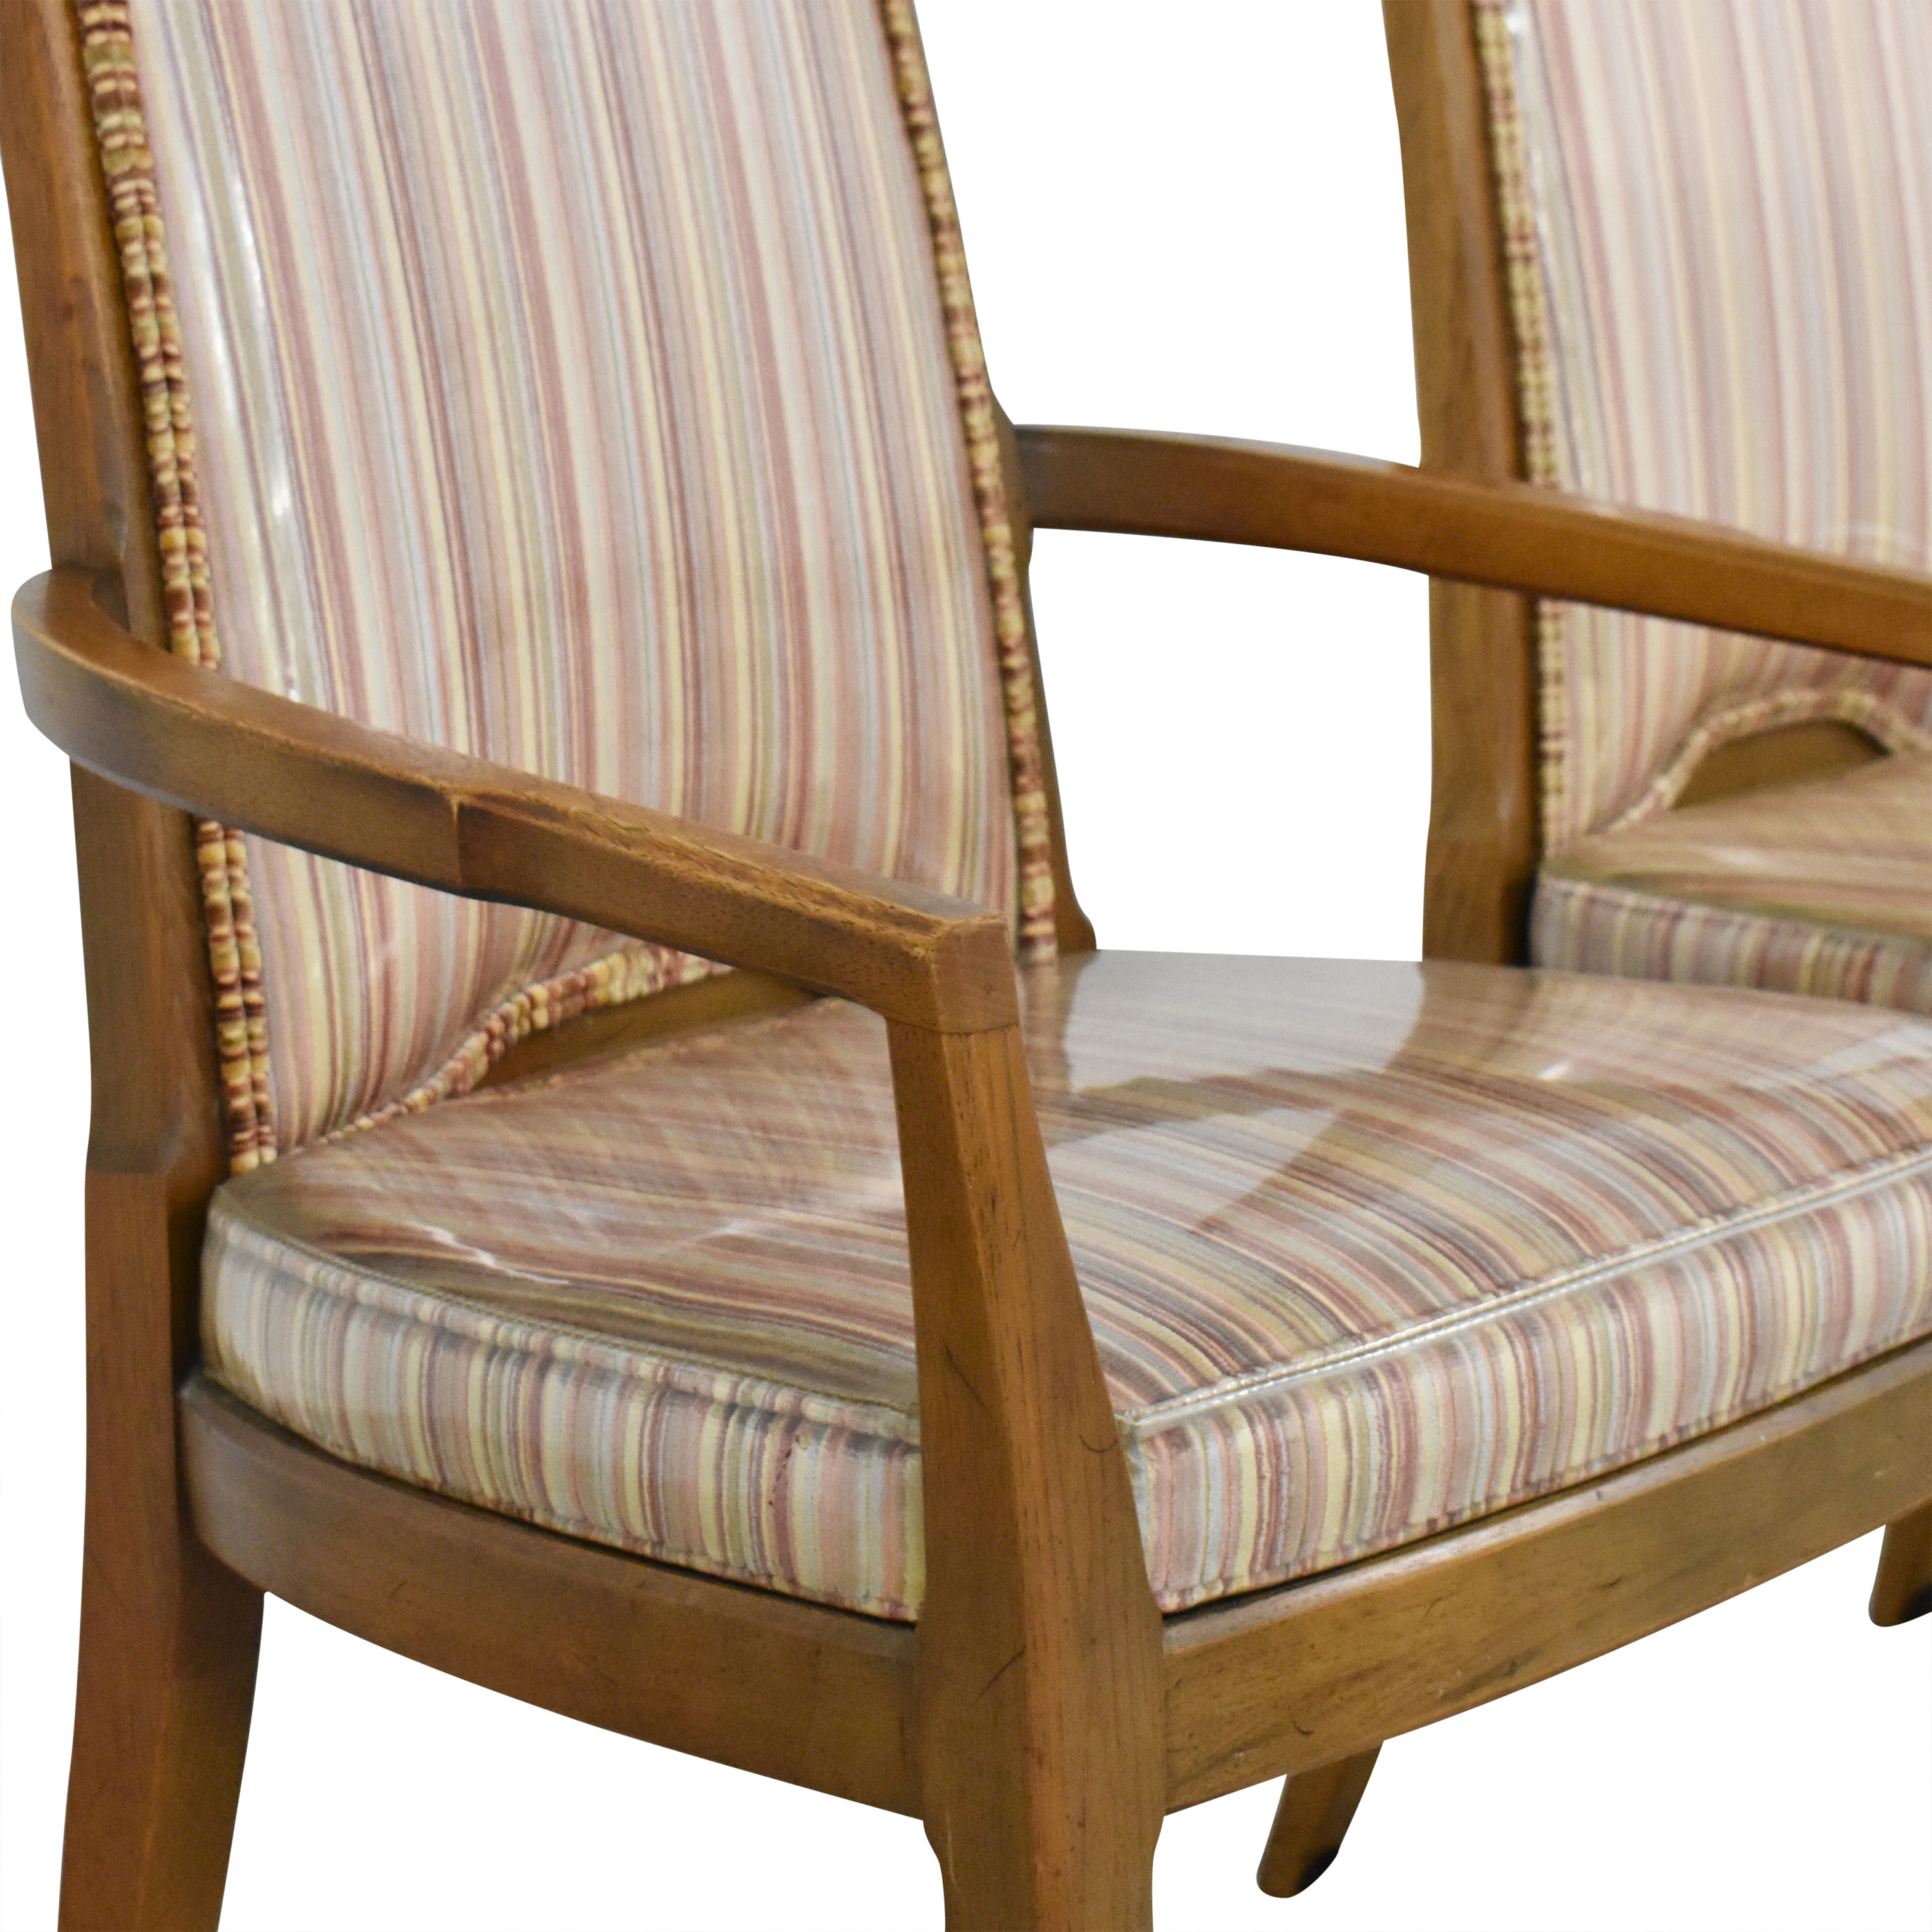 shop Drexel Stripe Upholstered Dining Chairs Drexel Chairs